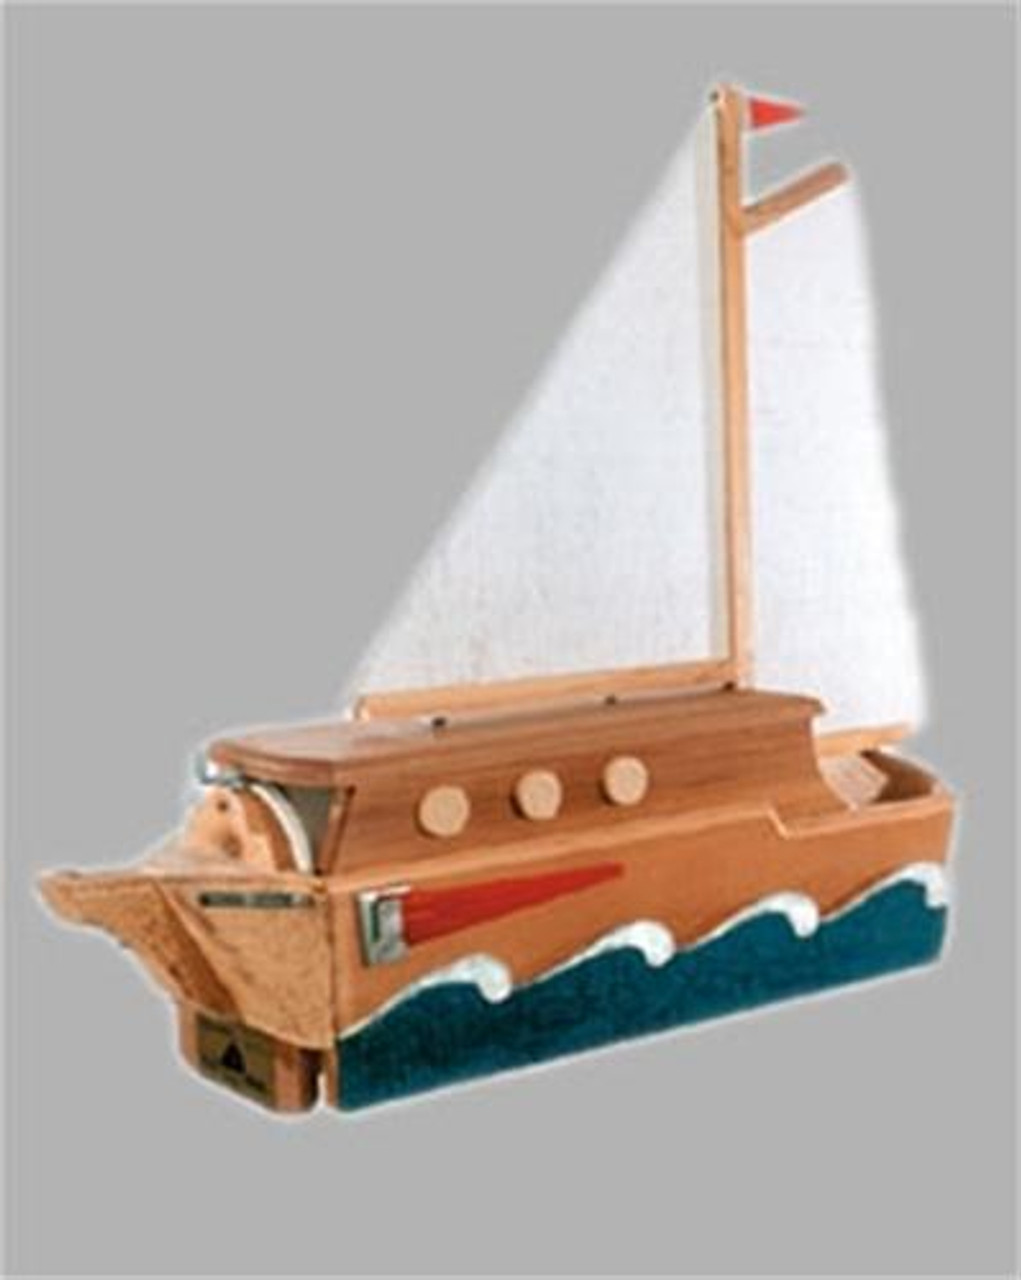 Cherry Tree Toys Sail Mail Woodworking Plan